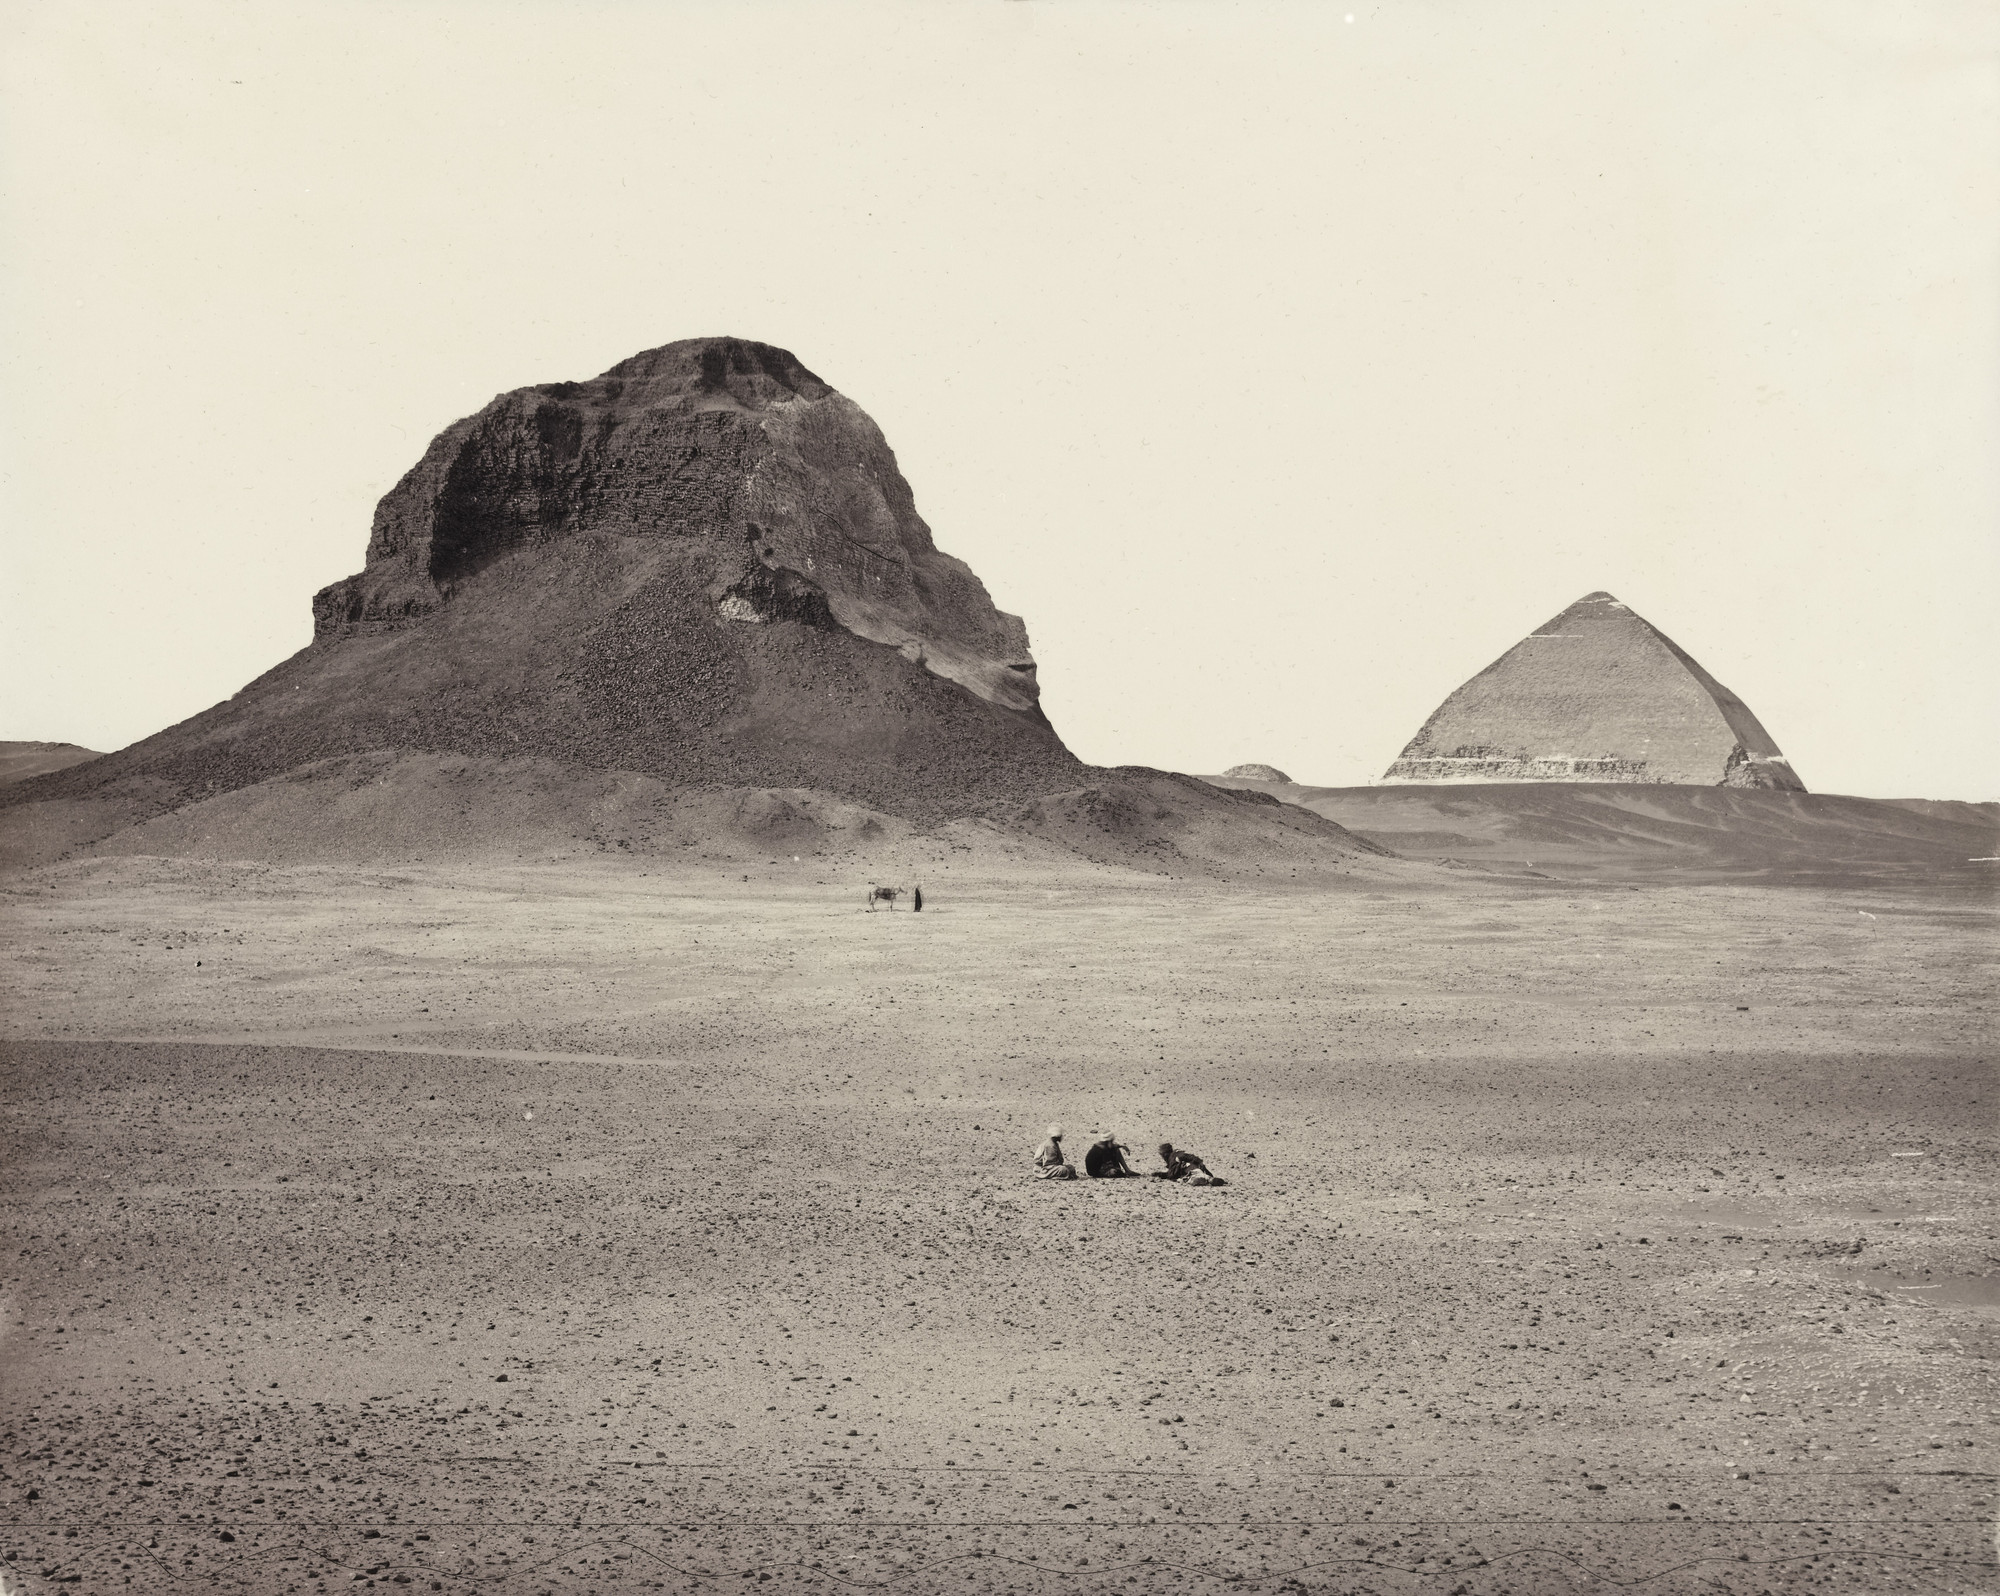 Francis Frith. The Pyramid of Dahsur. 1857-58